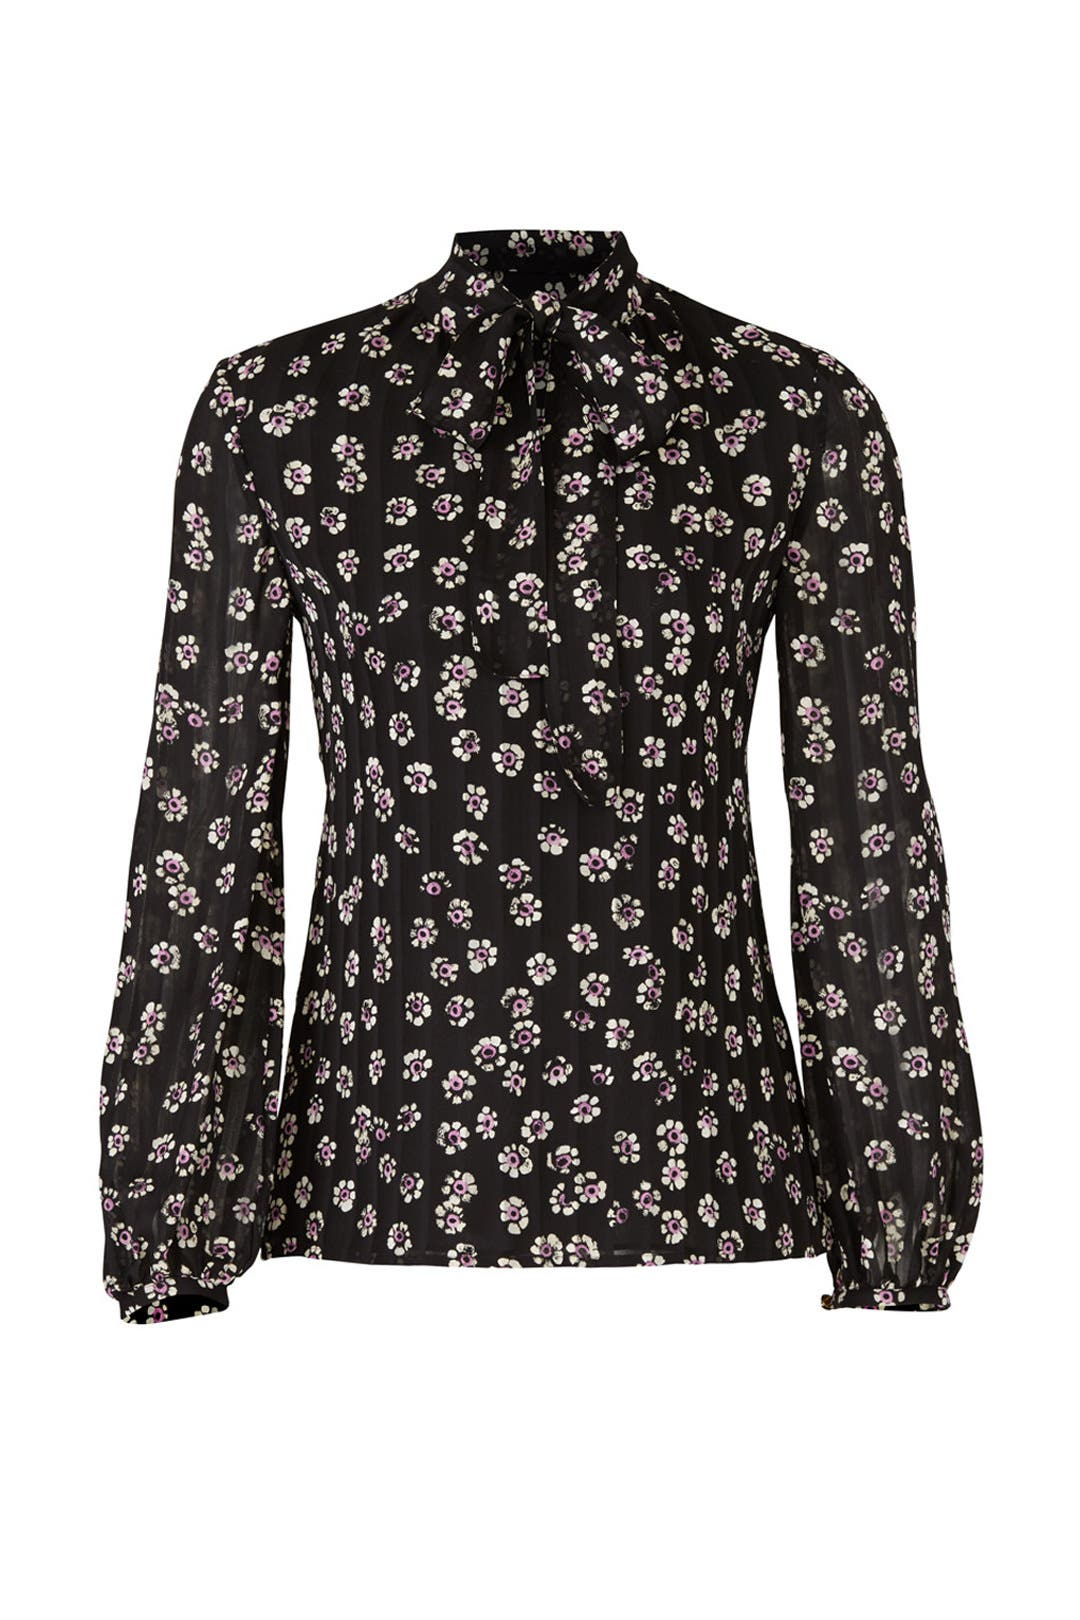 a03250d6271d Emma Bow Blouse by Tory Burch for  50